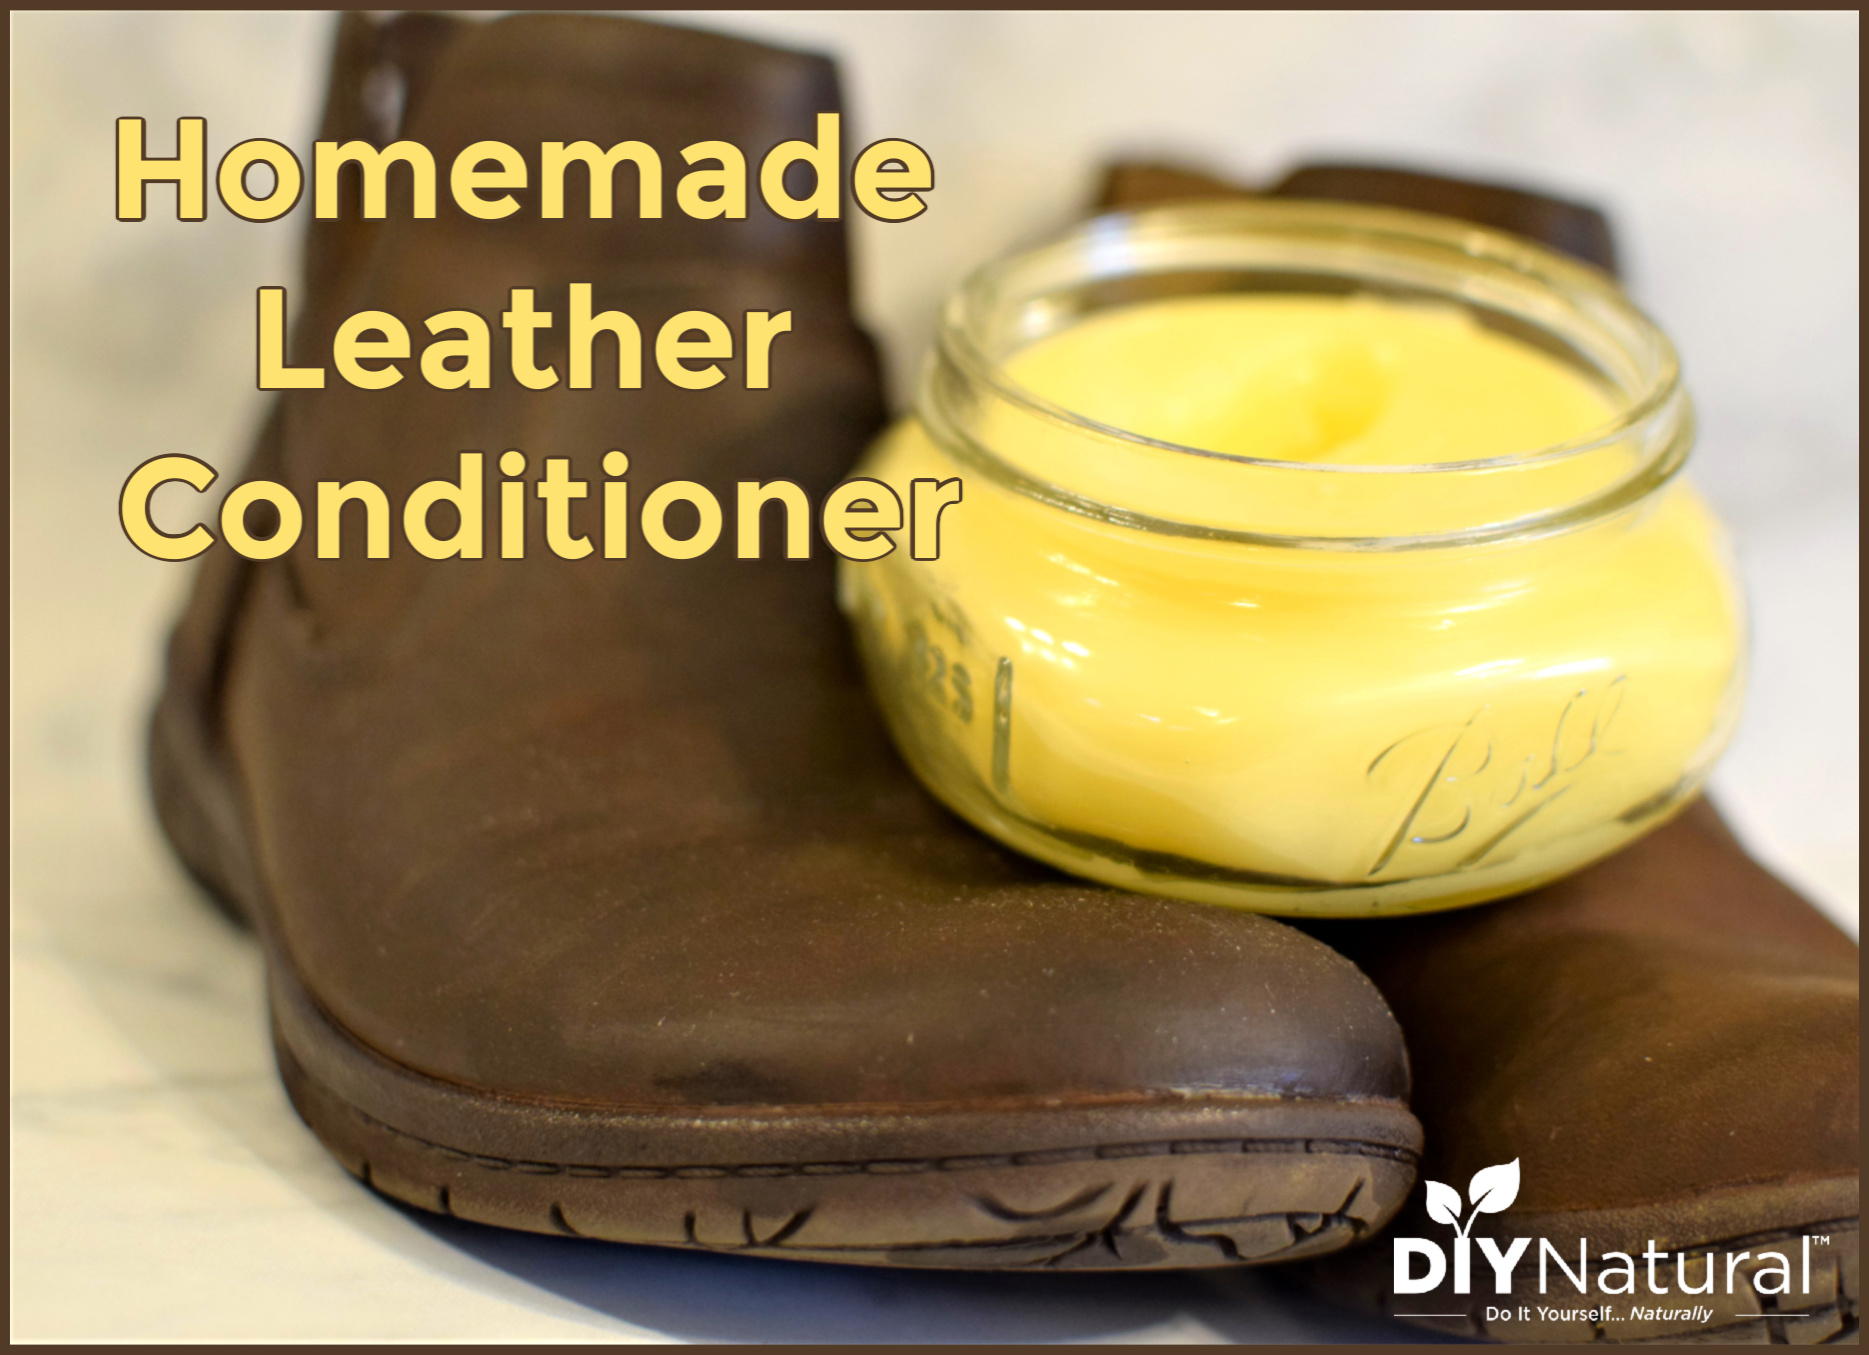 Homemade Leather Conditioner: Clean